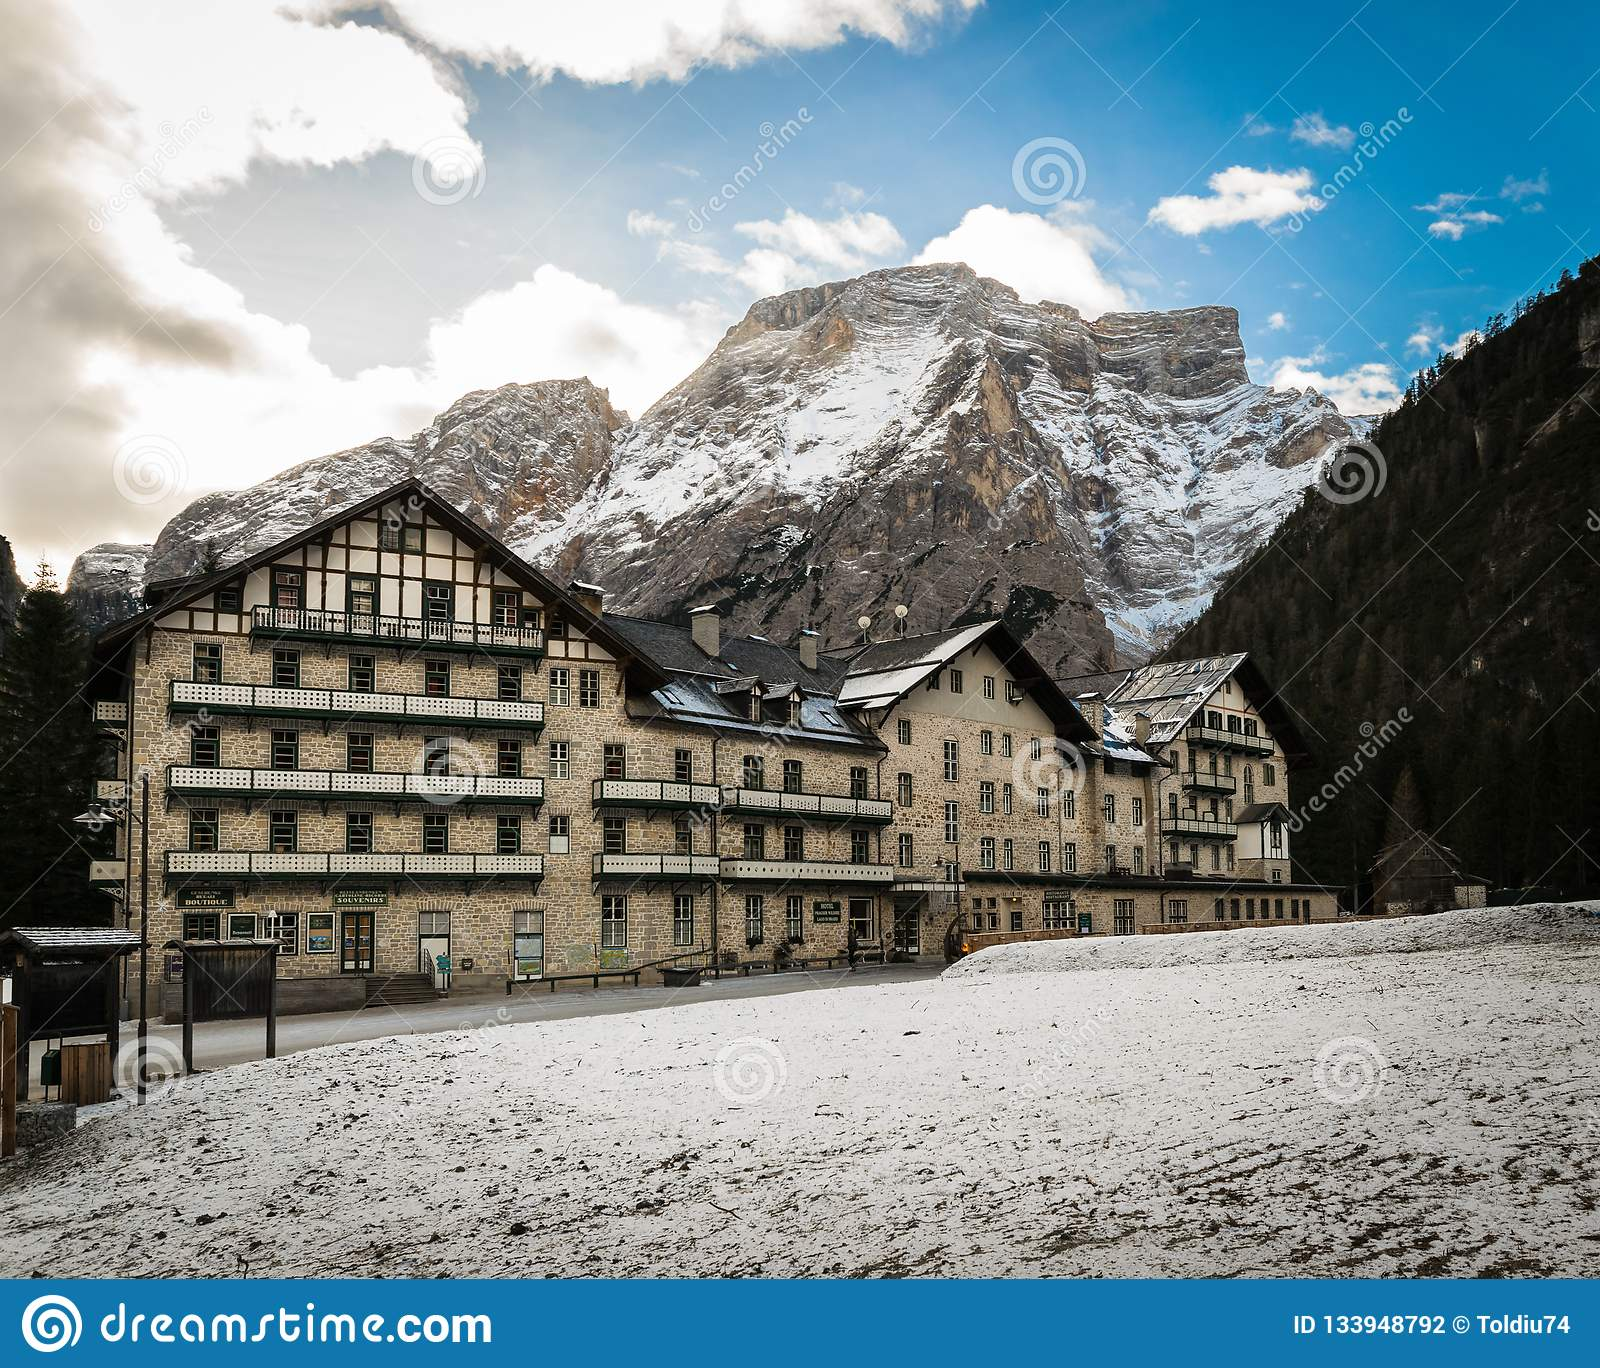 Typical mountain architecture and snowy mountain range in the ba